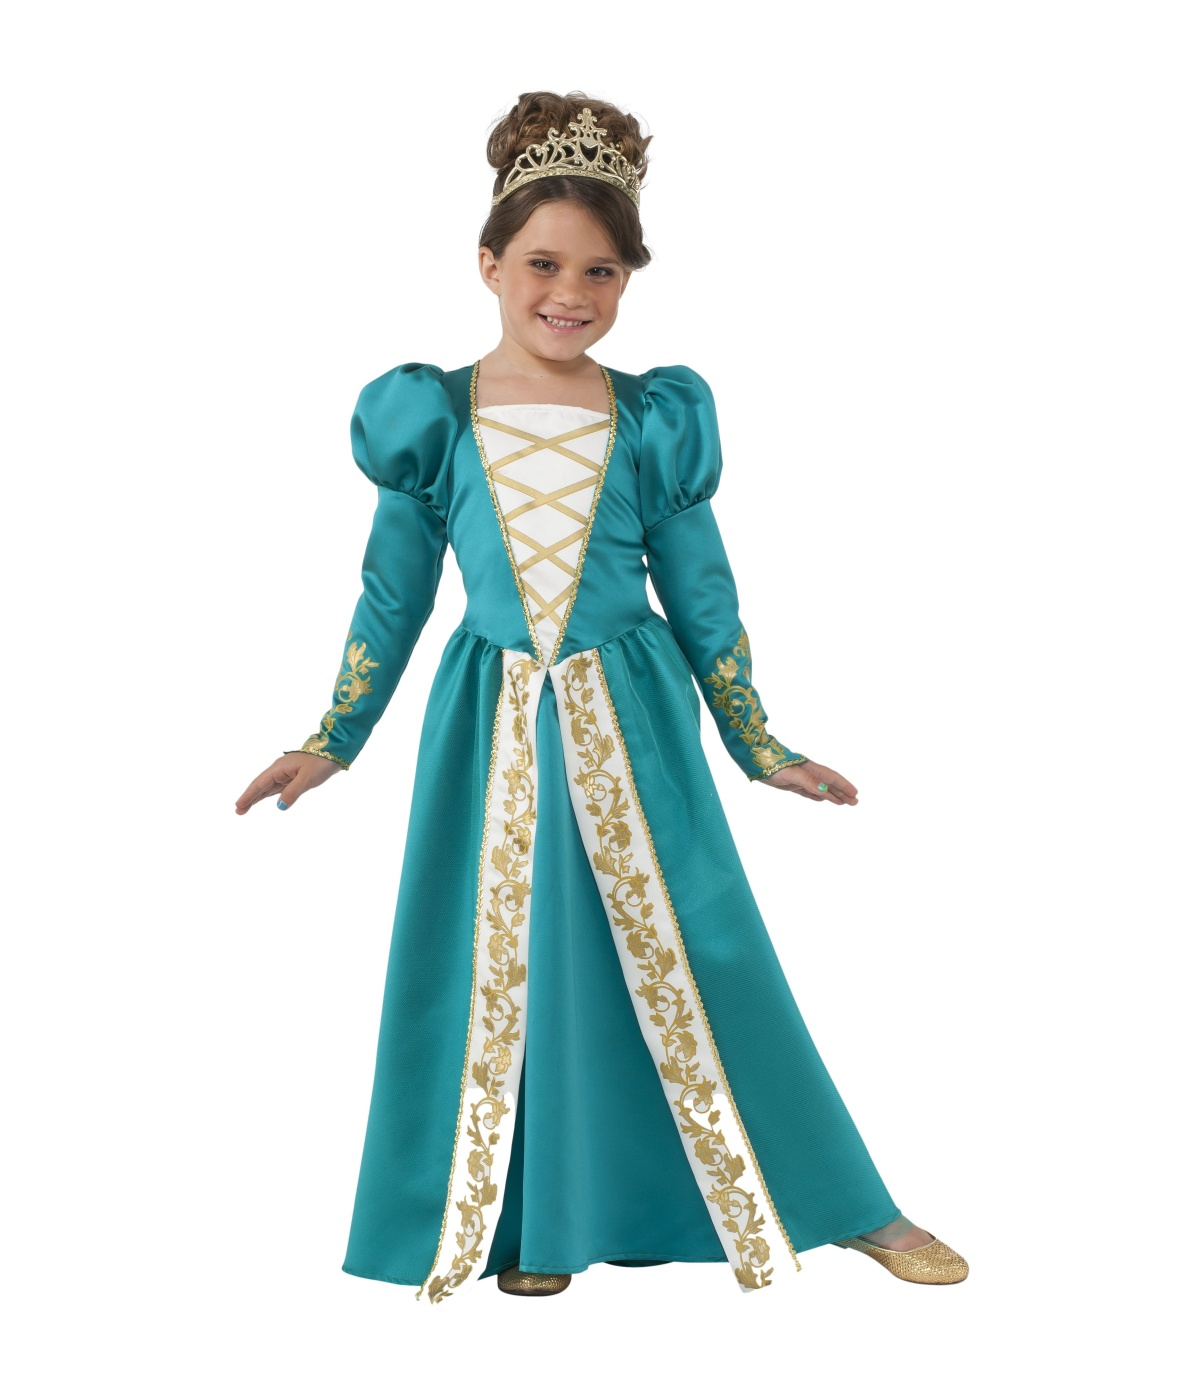 Jade Princess Renaissance Girls Costume  sc 1 st  Wonder Costumes & Jade Princess Renaissance Girls Costume - Renaissance Costumes